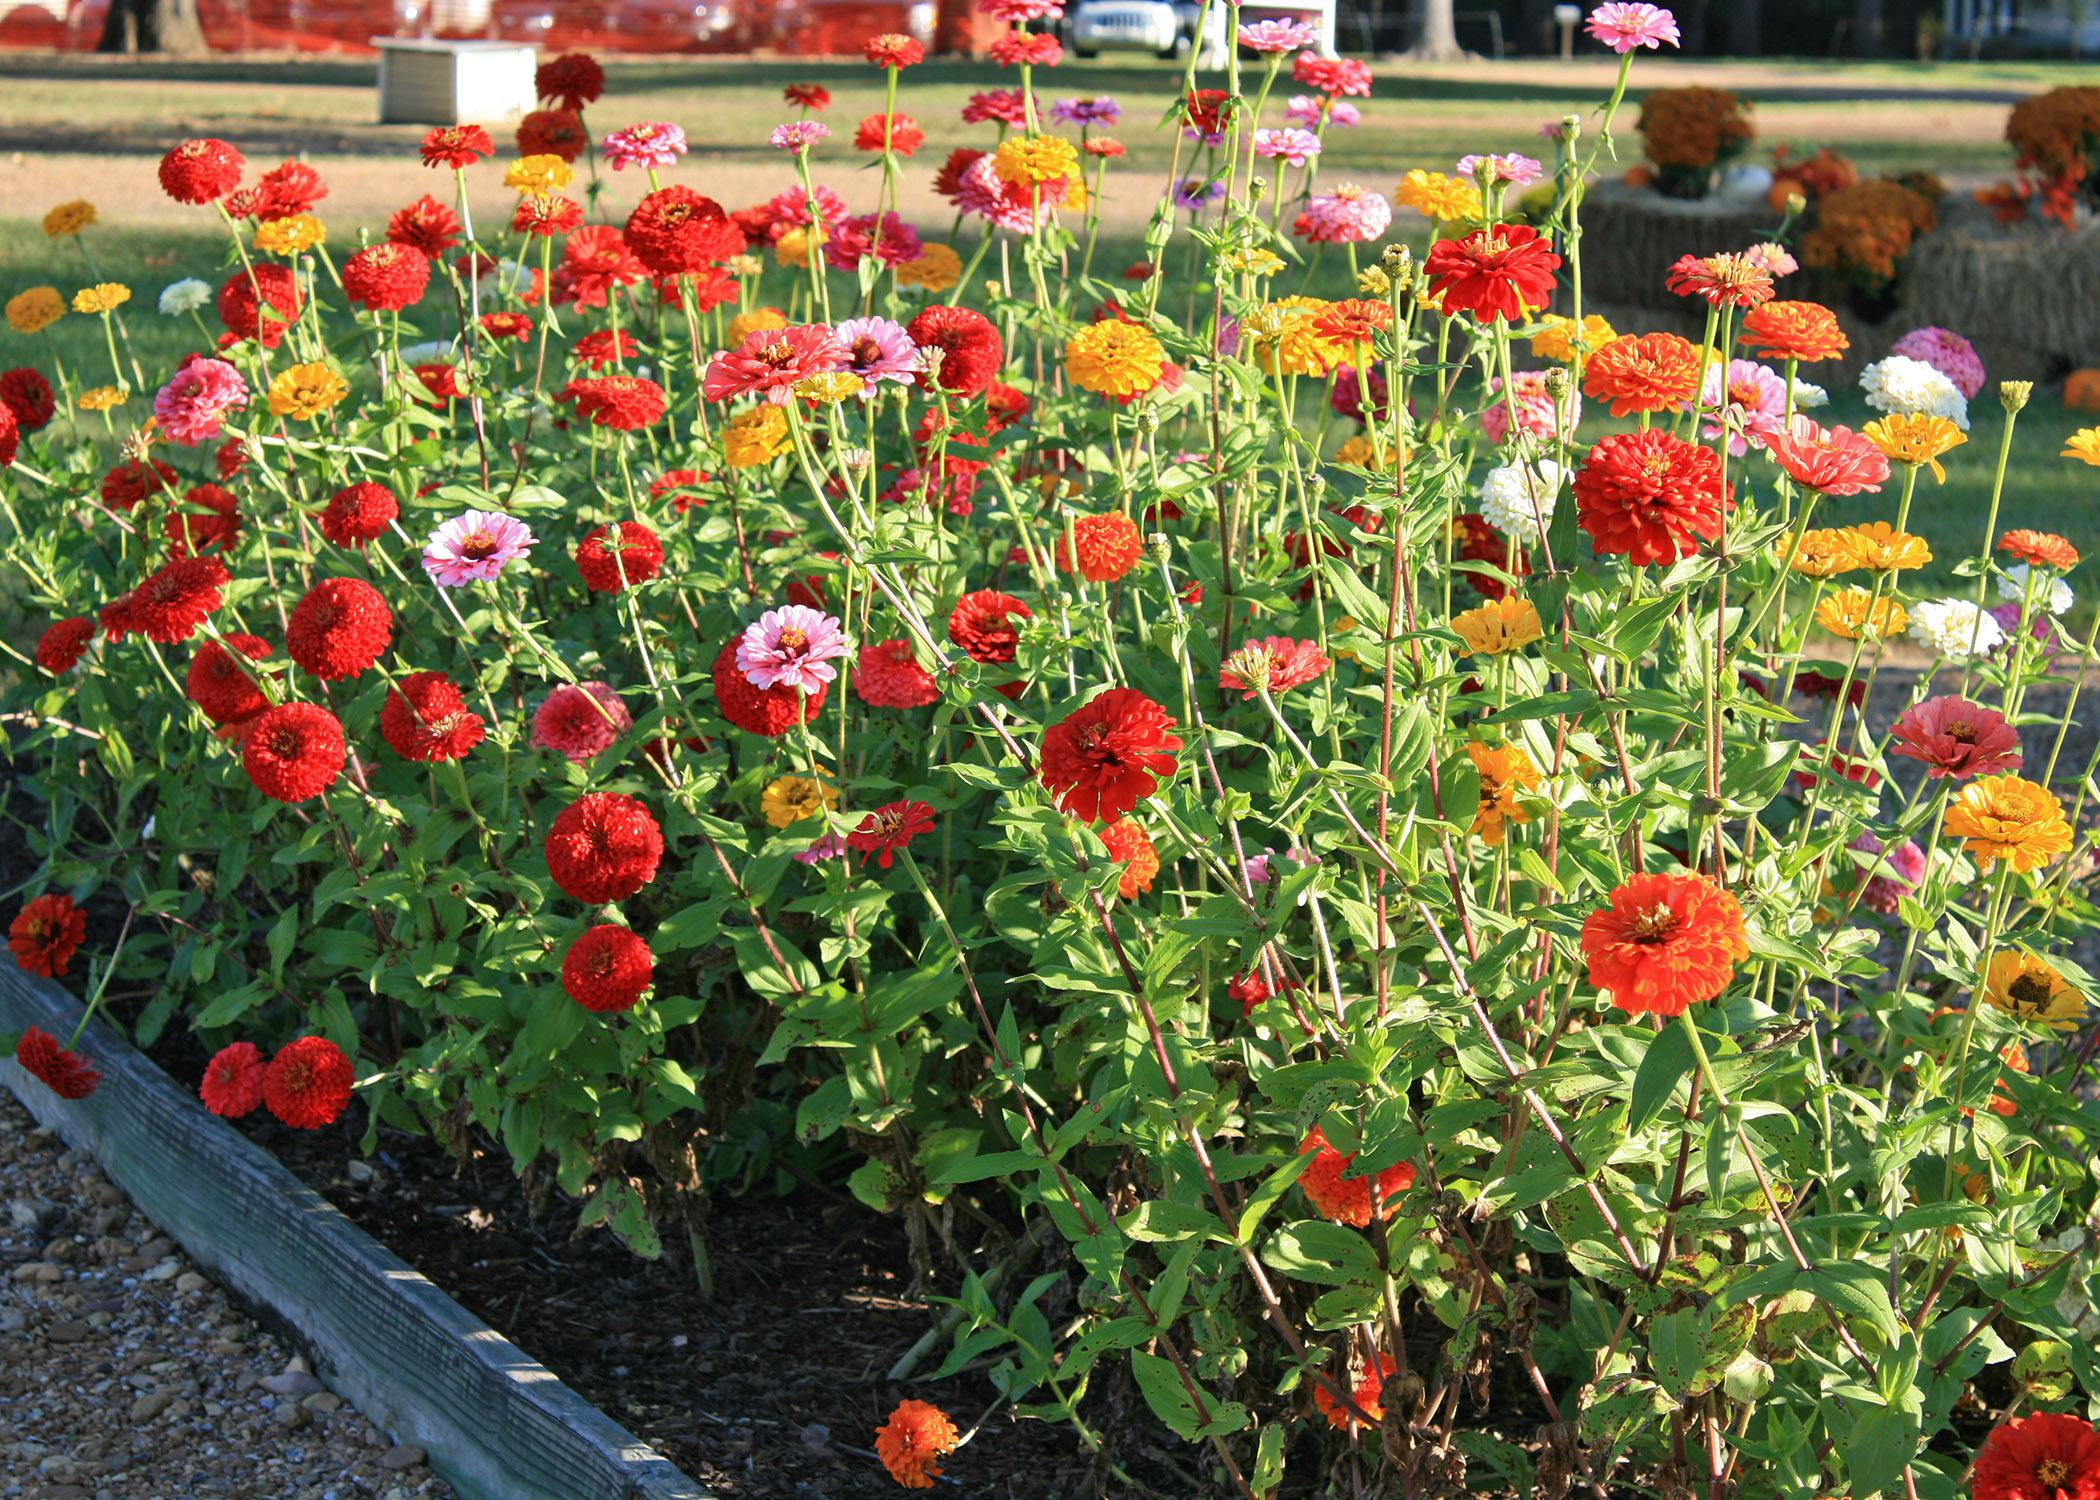 Zinnias Are Easy To Grow Bring Blooms To Summer Mississippi State University Extension Service